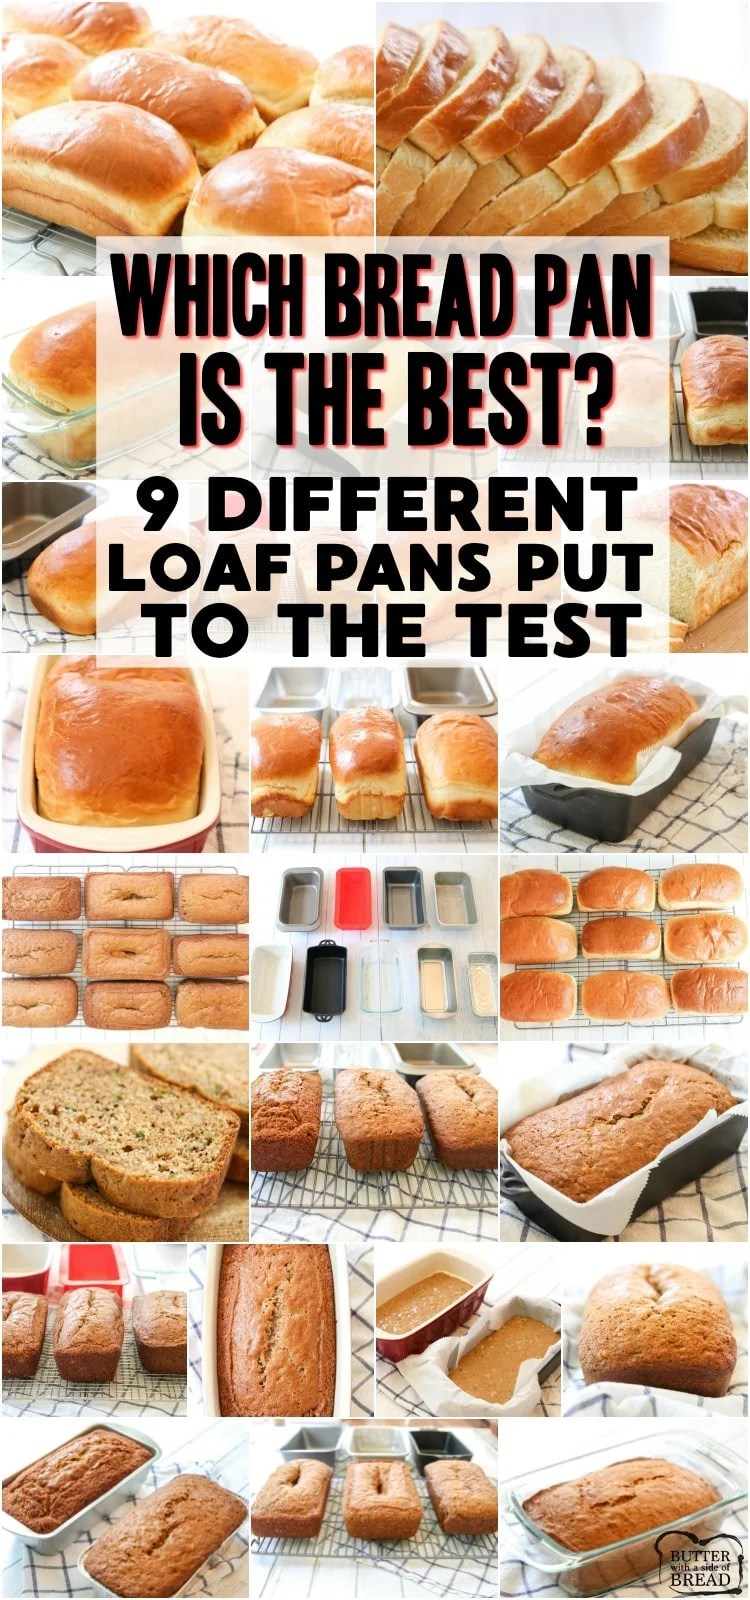 Loaf Pan comparison to see which pan bakes the best bread. 9 different bread pans put to the test with white bread and zucchini bread to see which is the best loaf pan. #bread #baking #breadpan #loaf #pan #comparison from BUTTER WITH A SIDE OF BREAD